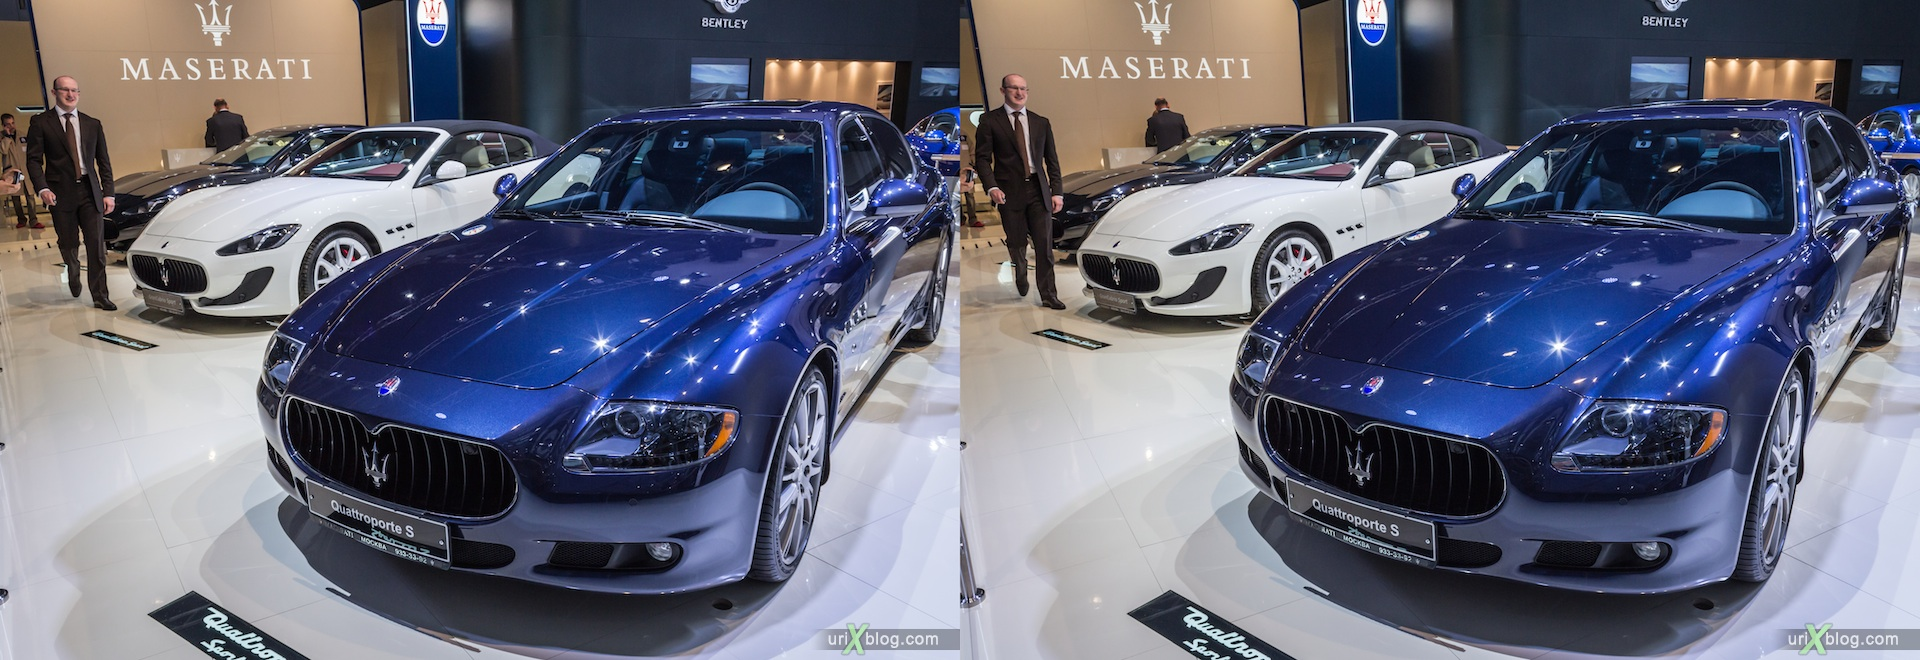 2012, Maserati Quattroporte S, Moscow International Automobile Salon, auto show, 3D, stereo pair, cross-eyed, crossview